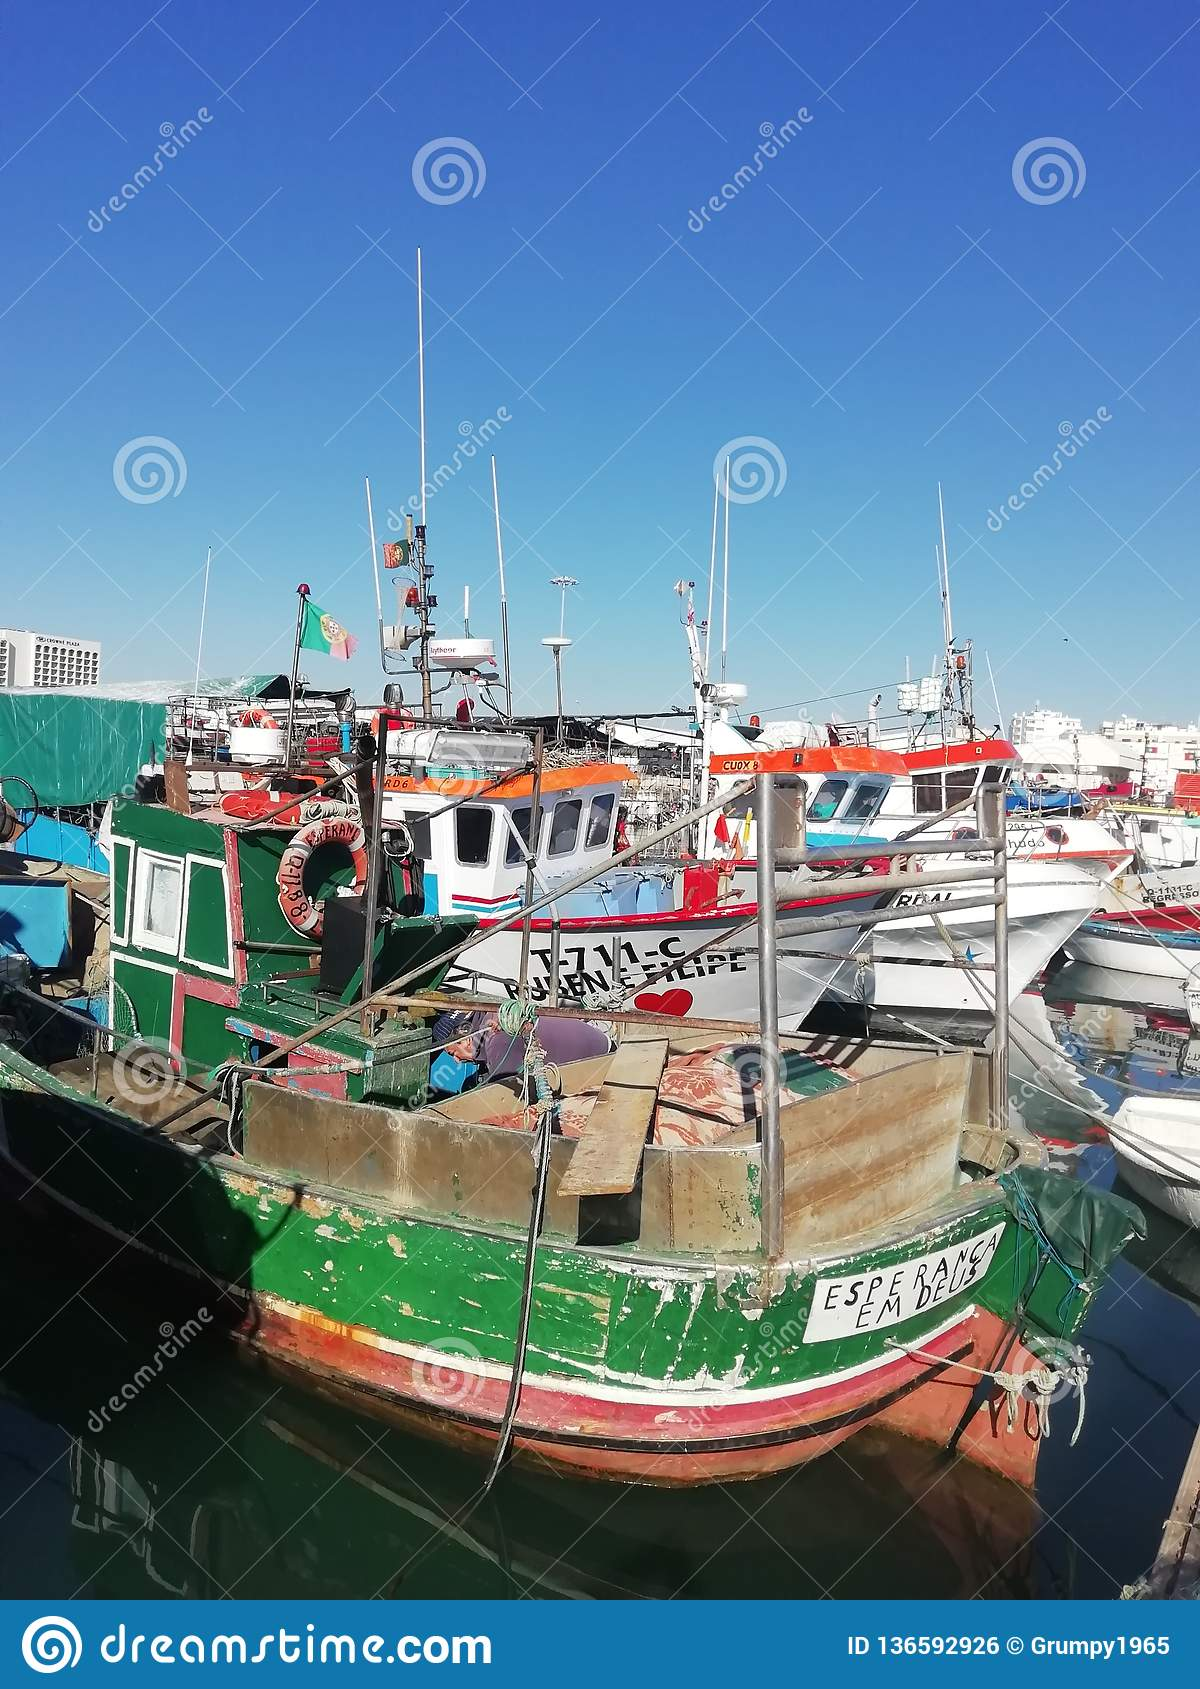 Quatiera Fishing Harbour - Parked boats